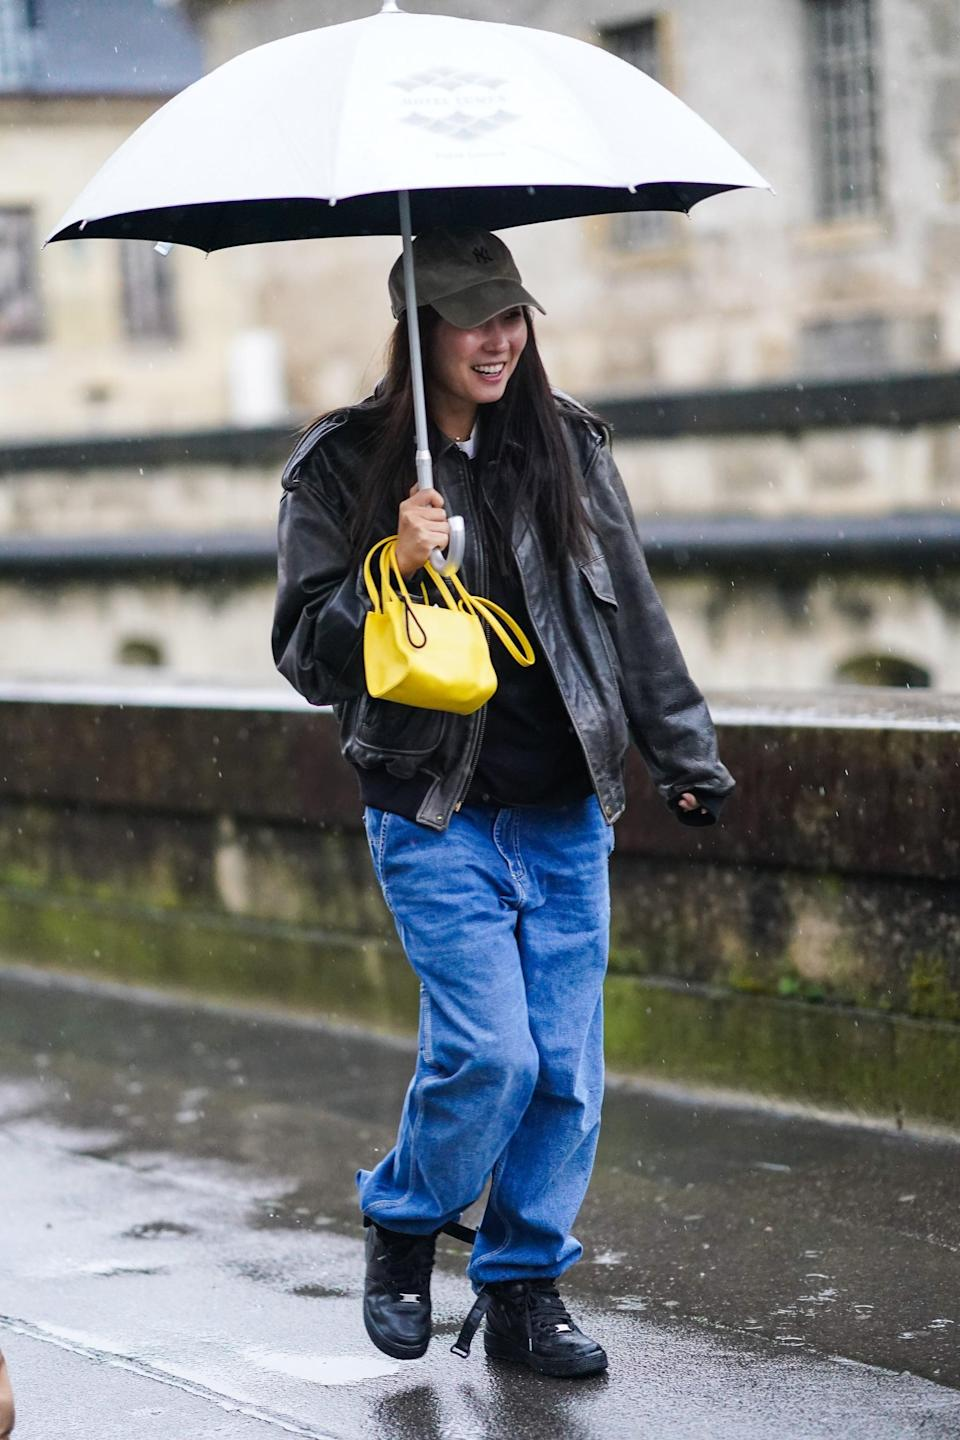 <p>Rain or shine, a pair of baggy jeans is a fail-safe look with sneakers, a baseball hat, and a jacket. A colorful minibag is a fashion-forward finish.</p>